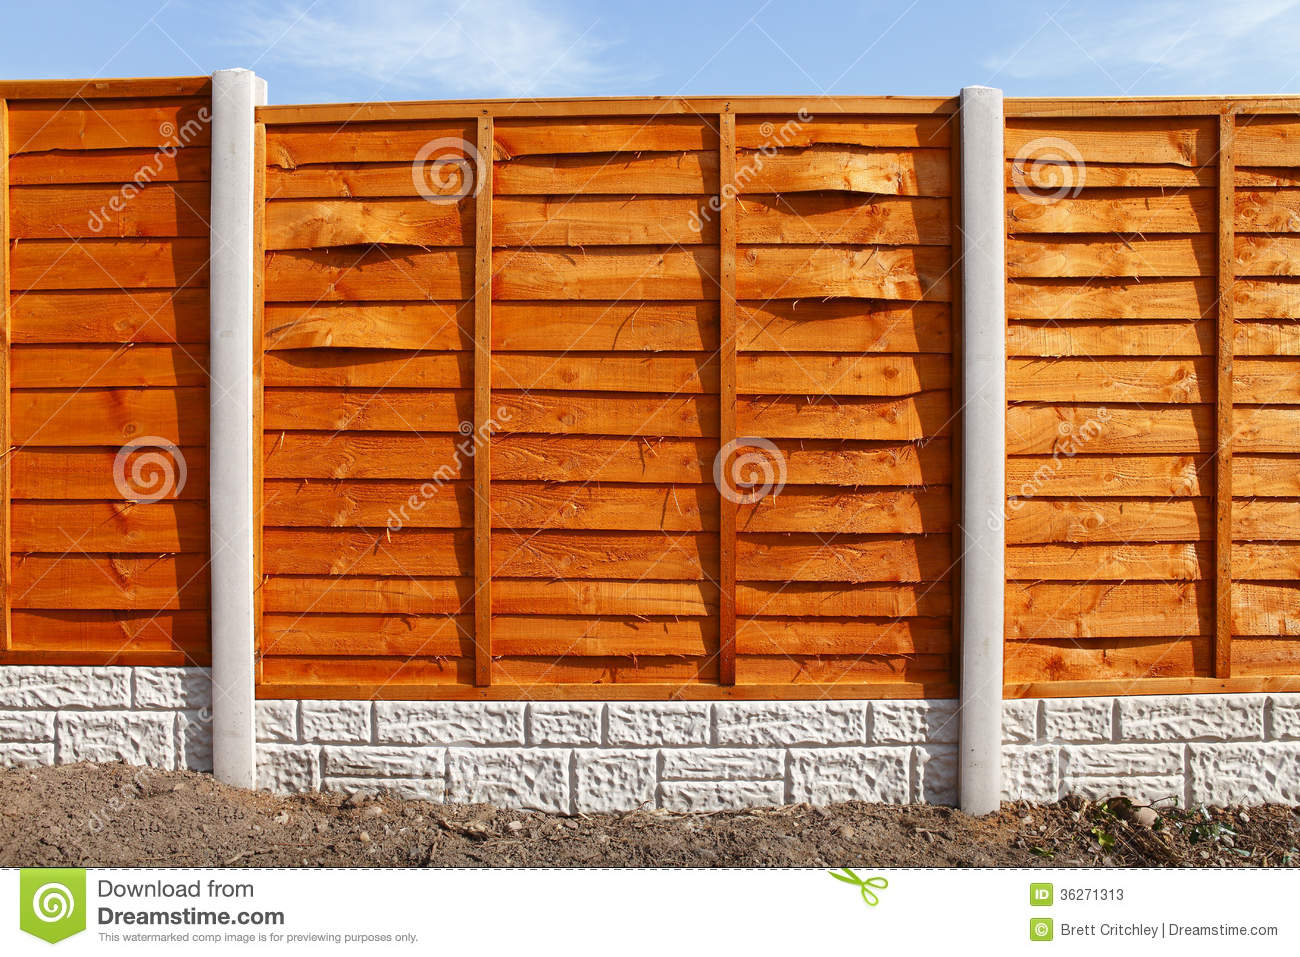 New fence panels stock photos image 36271313 boards concrete fence fitted foot gravel new panels posts baanklon Gallery